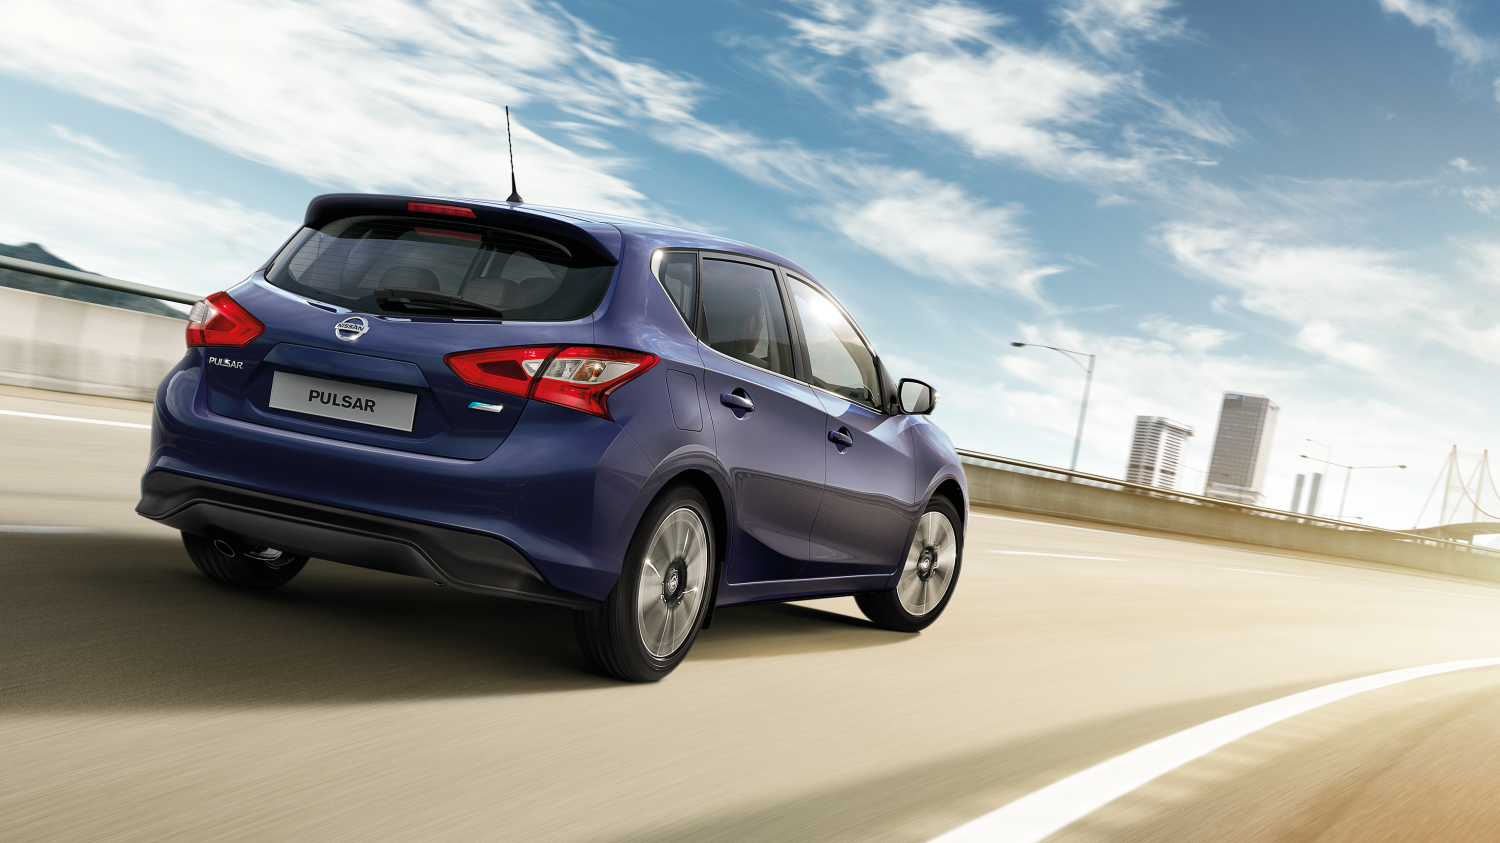 Nissan Pulsar – Hatchback | 3/4 back action shot on road